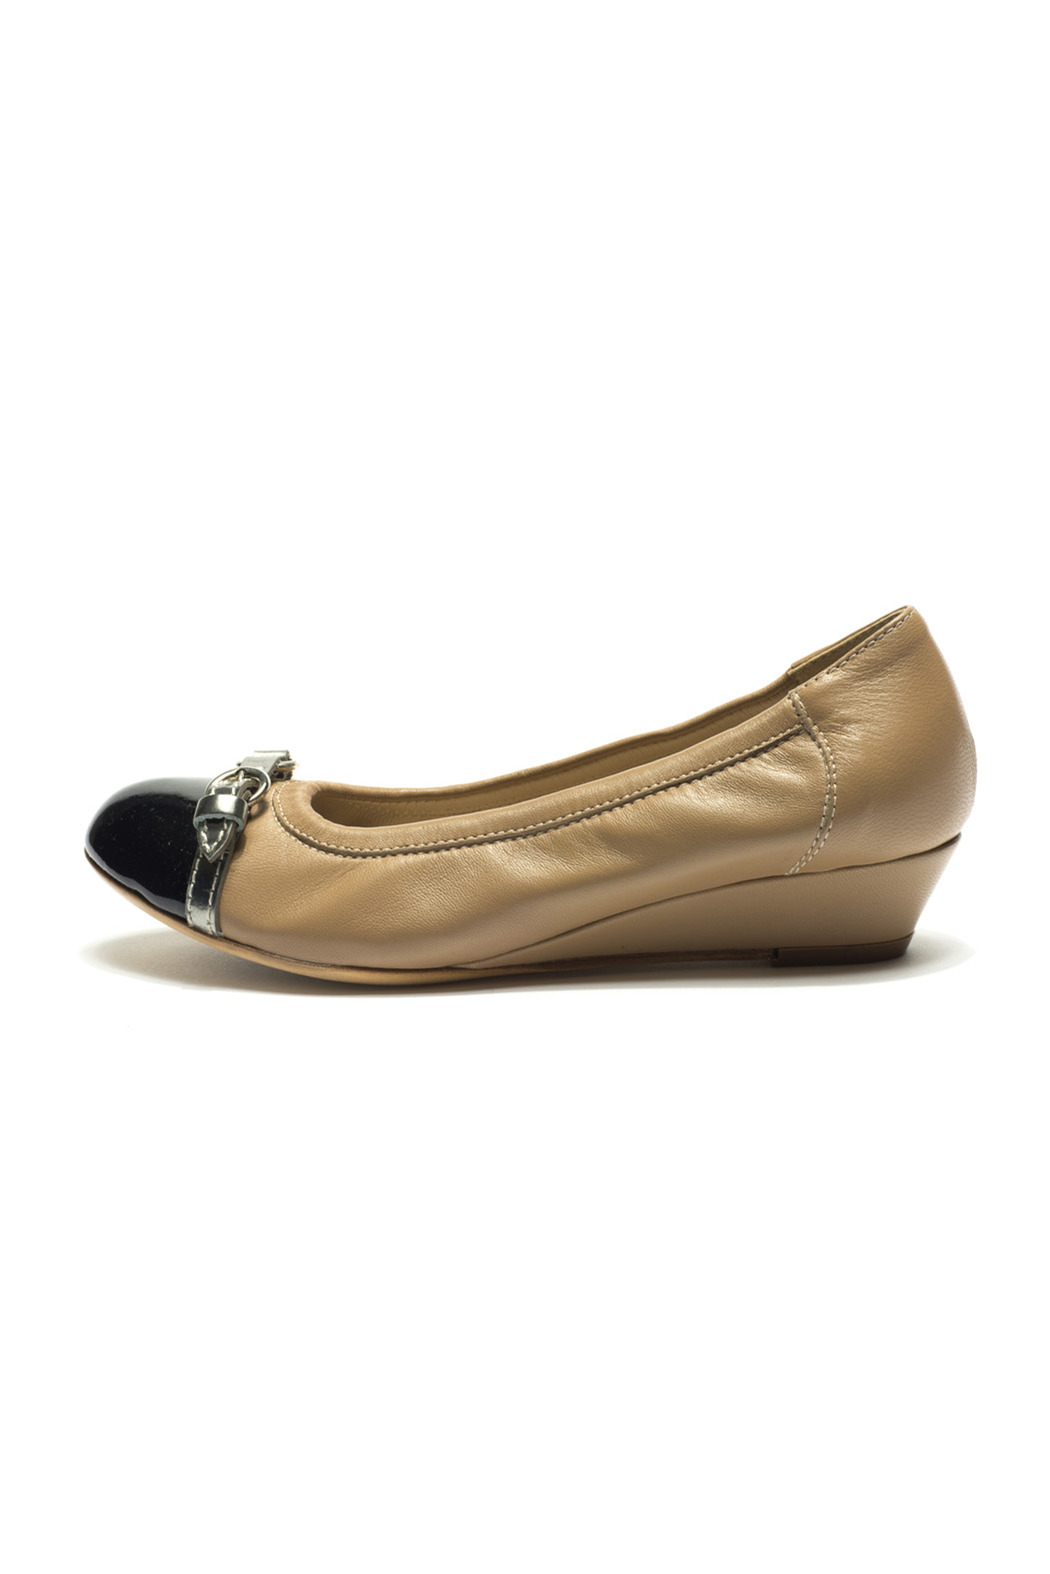 AGL Patent Black Leather Pointed Round-Toe Oxfords | Black